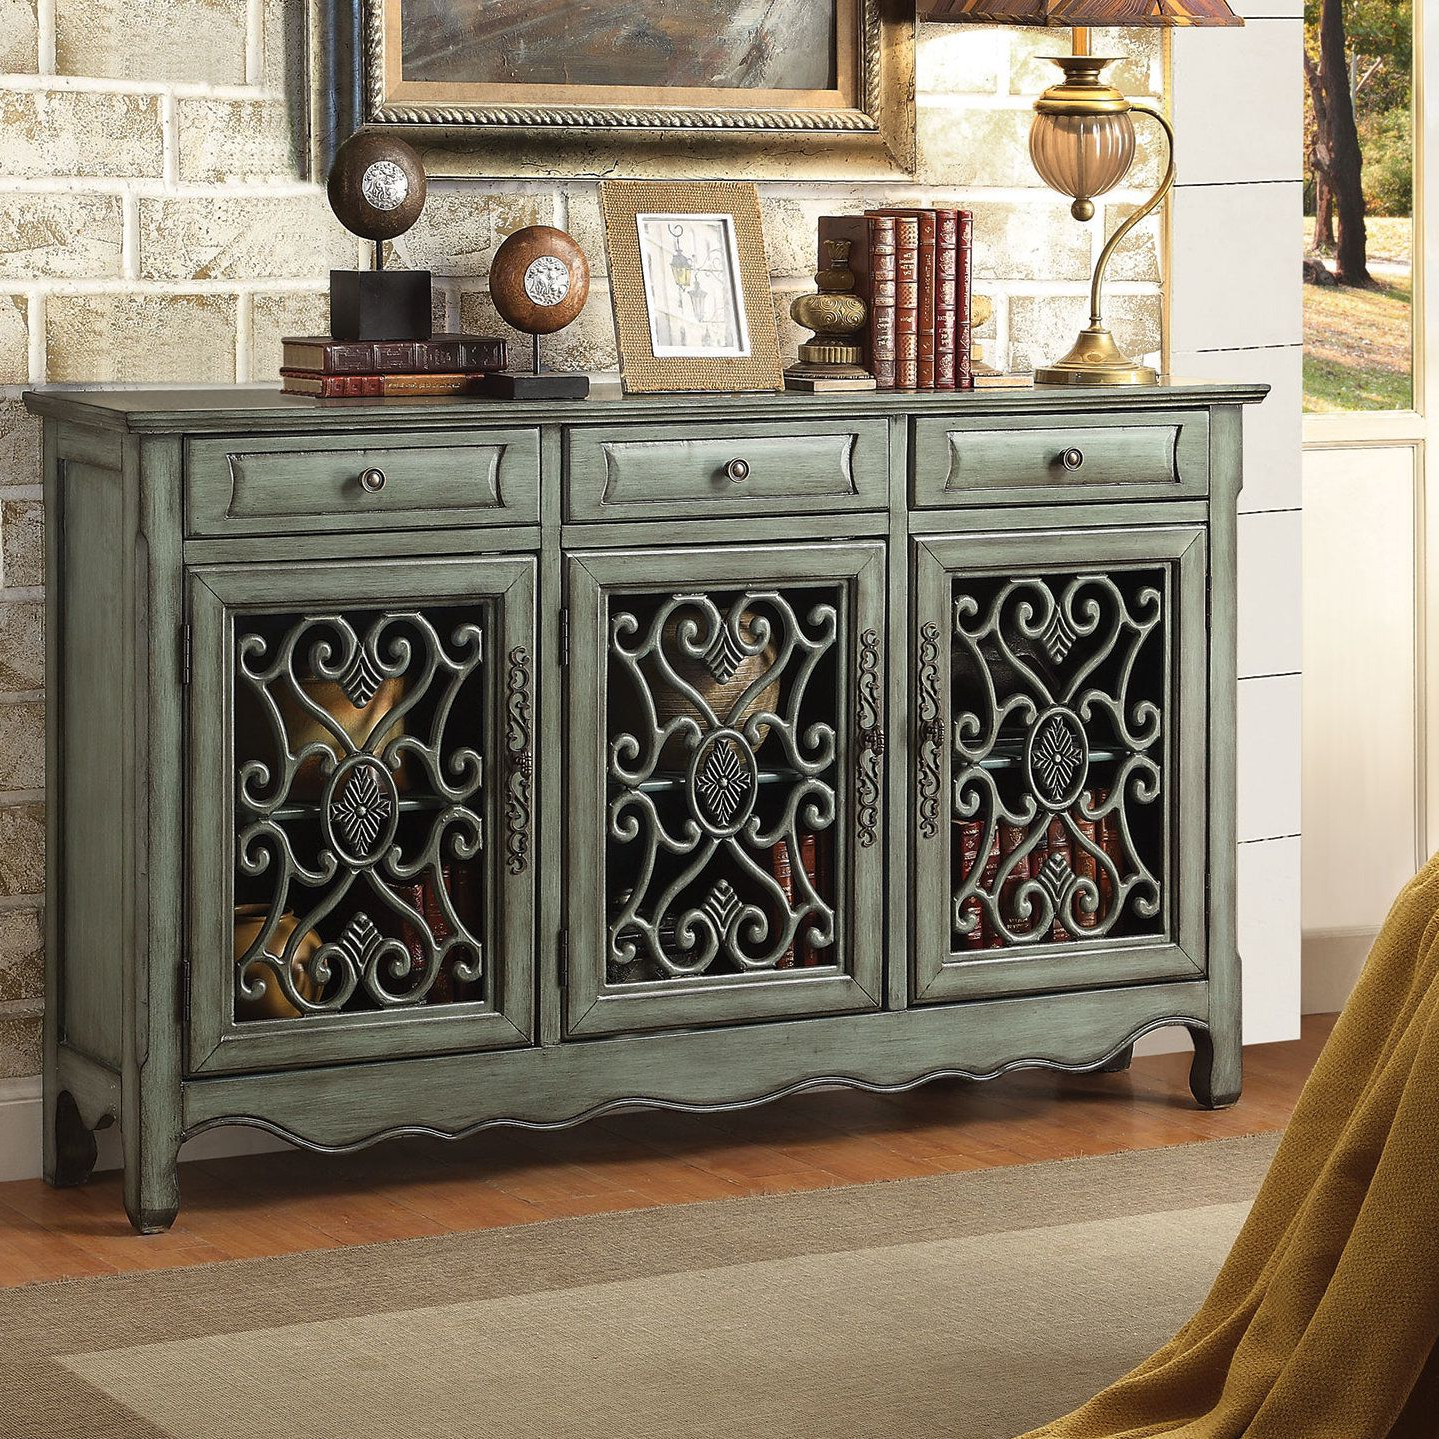 Helvic 3 Drawer 3 Door Accent Cabinet (View 19 of 20)